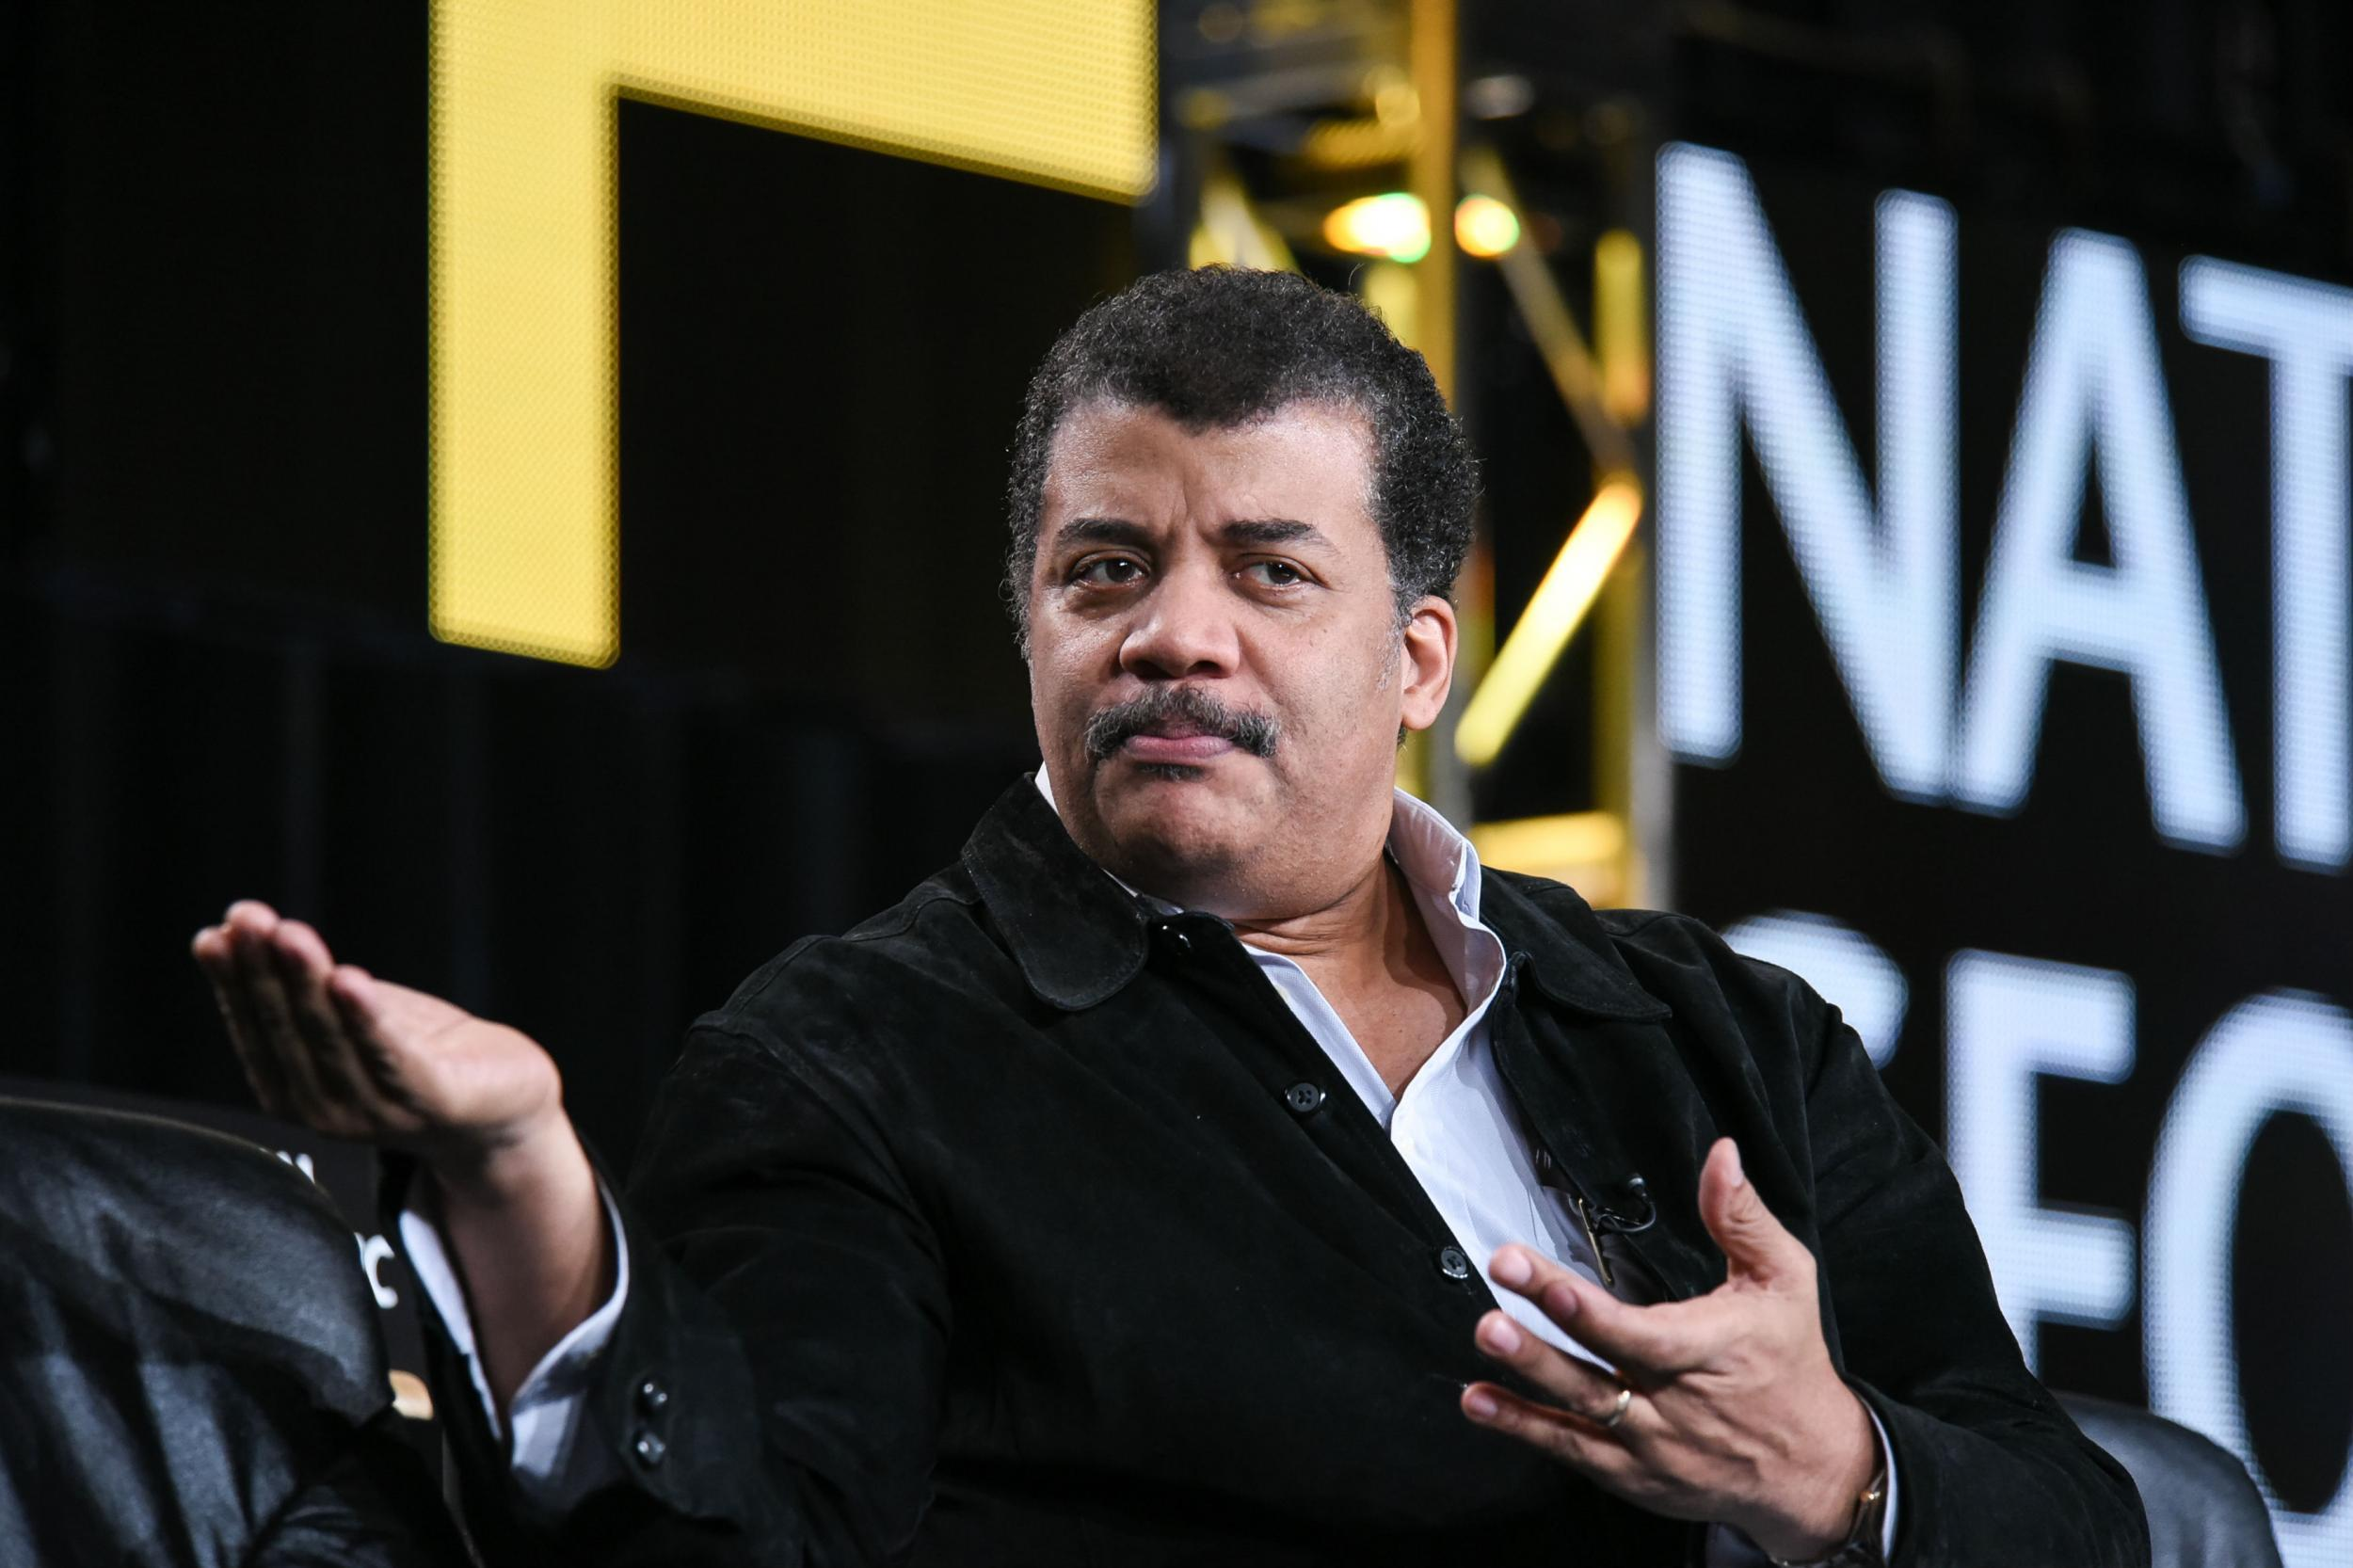 Popular scientist and TV personality Neil DeGrasse Tyson has appeared on Nova and The Daily Show and runs New Yorks Hayden Planetarium